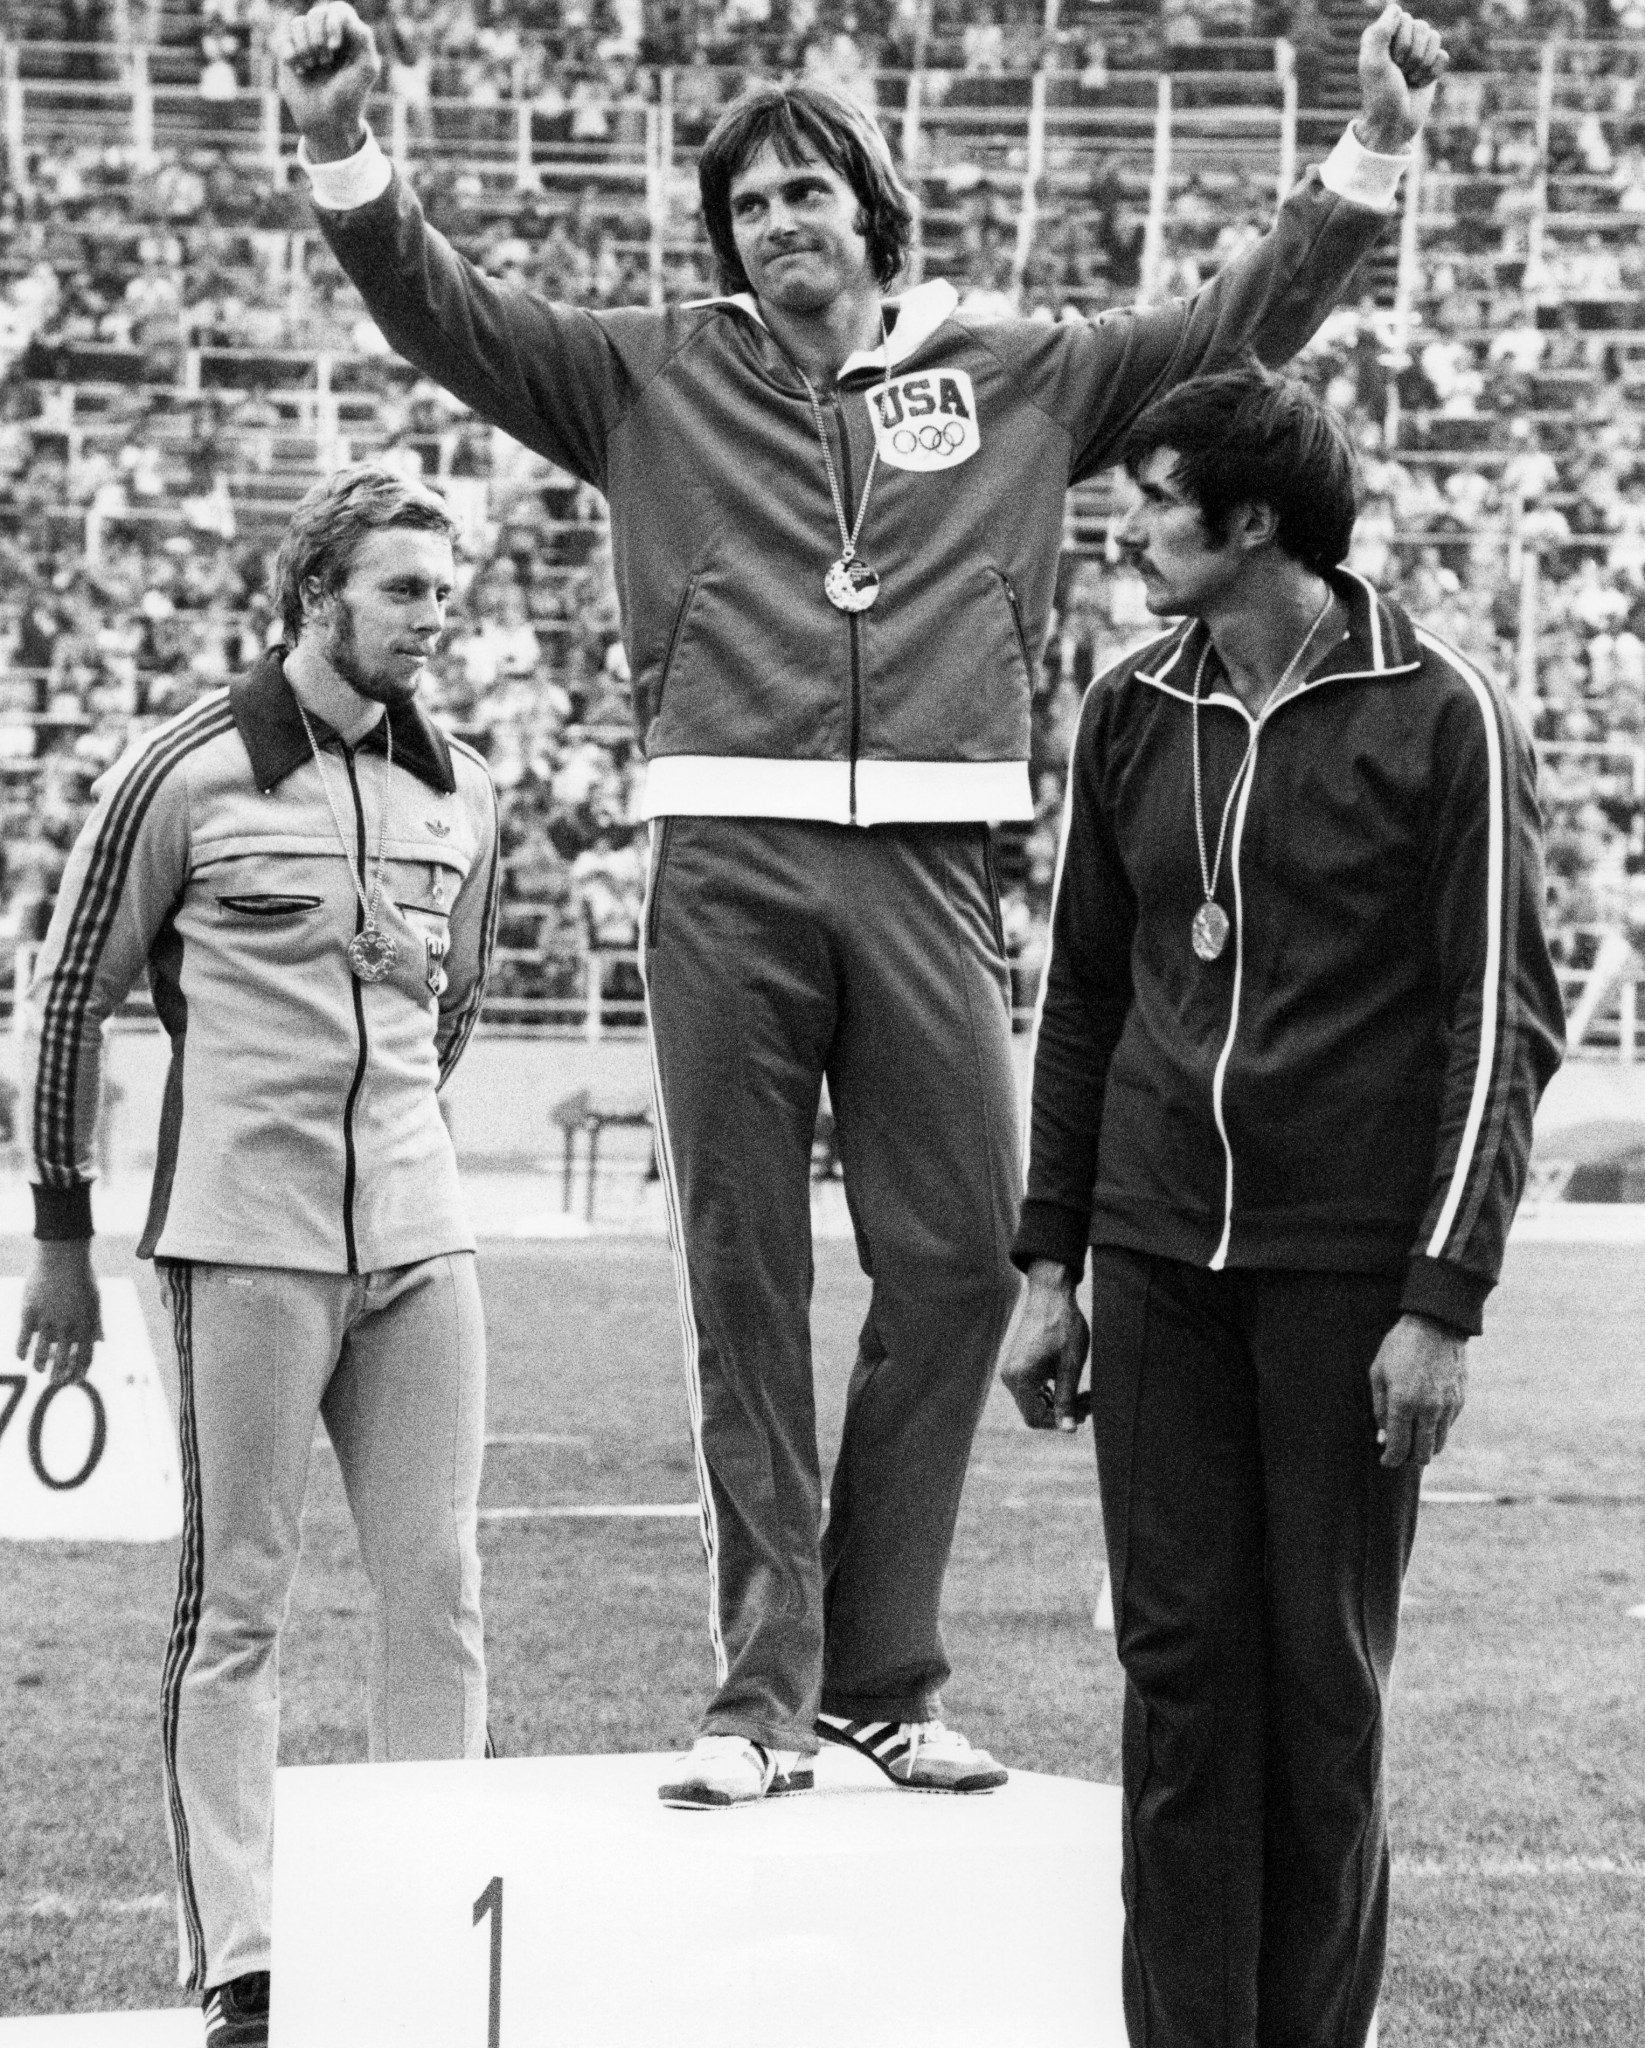 Bruce Jenner, centre, as he athlete was known at the time, captured decathlon gold at the Montreal 1976 Olympics ©Getty Images